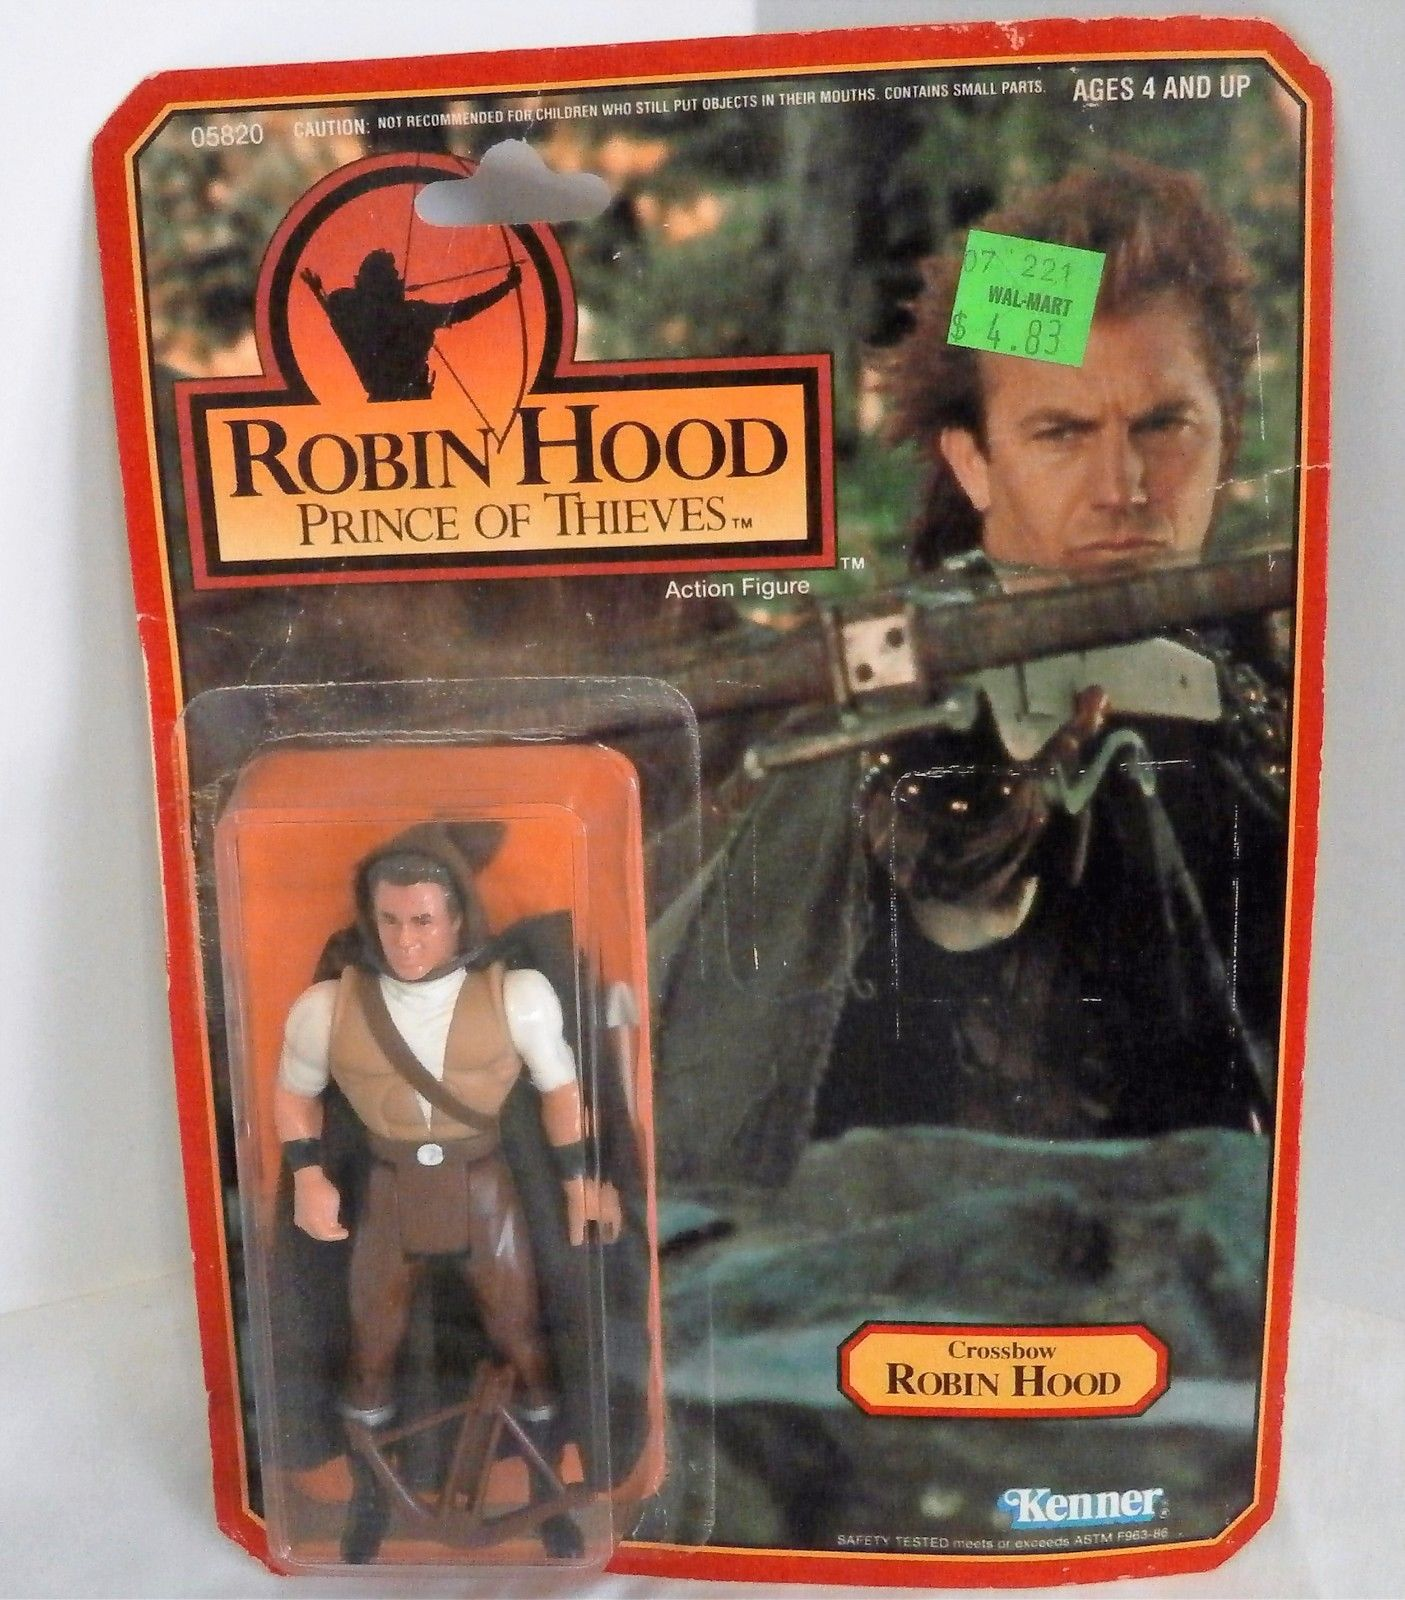 Robin Hood with Crossbow